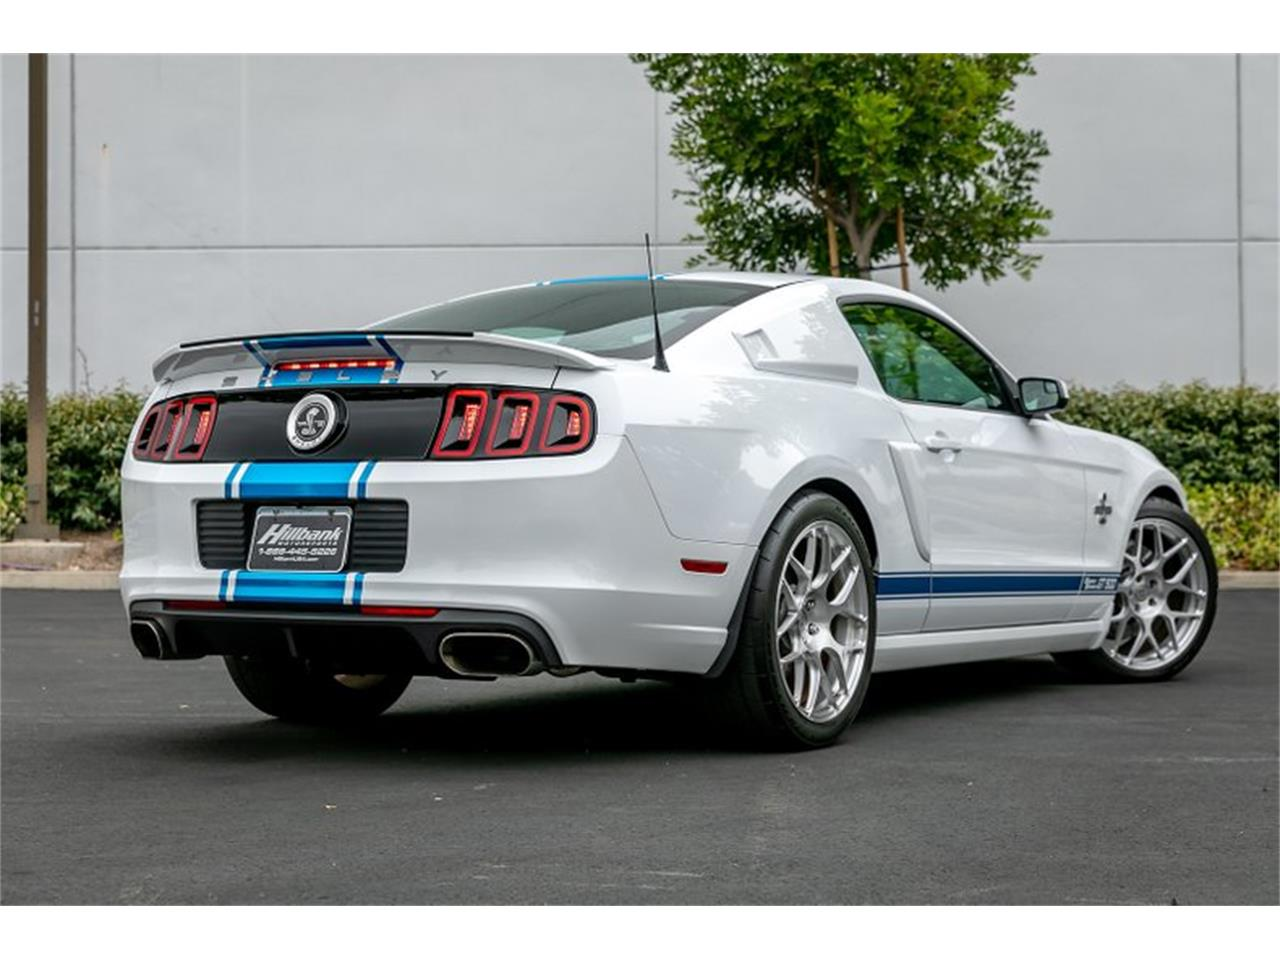 Large Picture of 2014 Mustang Shelby GT500 Super Snake located in California - $109,950.00 - QB1K